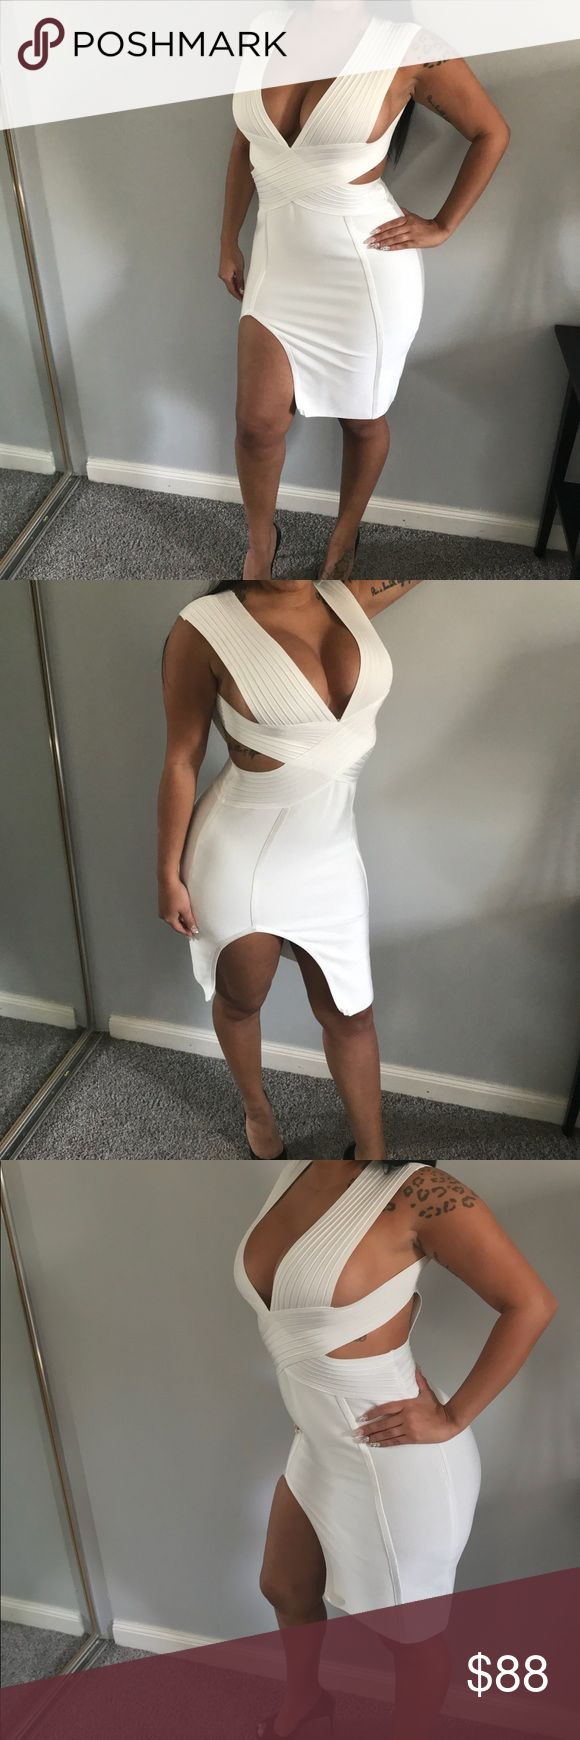 "The ""Angela"" 💎White Bandage Dress💎 💎Available in size: S, M, L💎 💎Premium Quality💎 💎Please refer to size chart for correct sizing💎 💎NO Offers/Trades💎 💎ALL SALES ARE FINAL💎 Chic By Nathalie Dresses Mini"